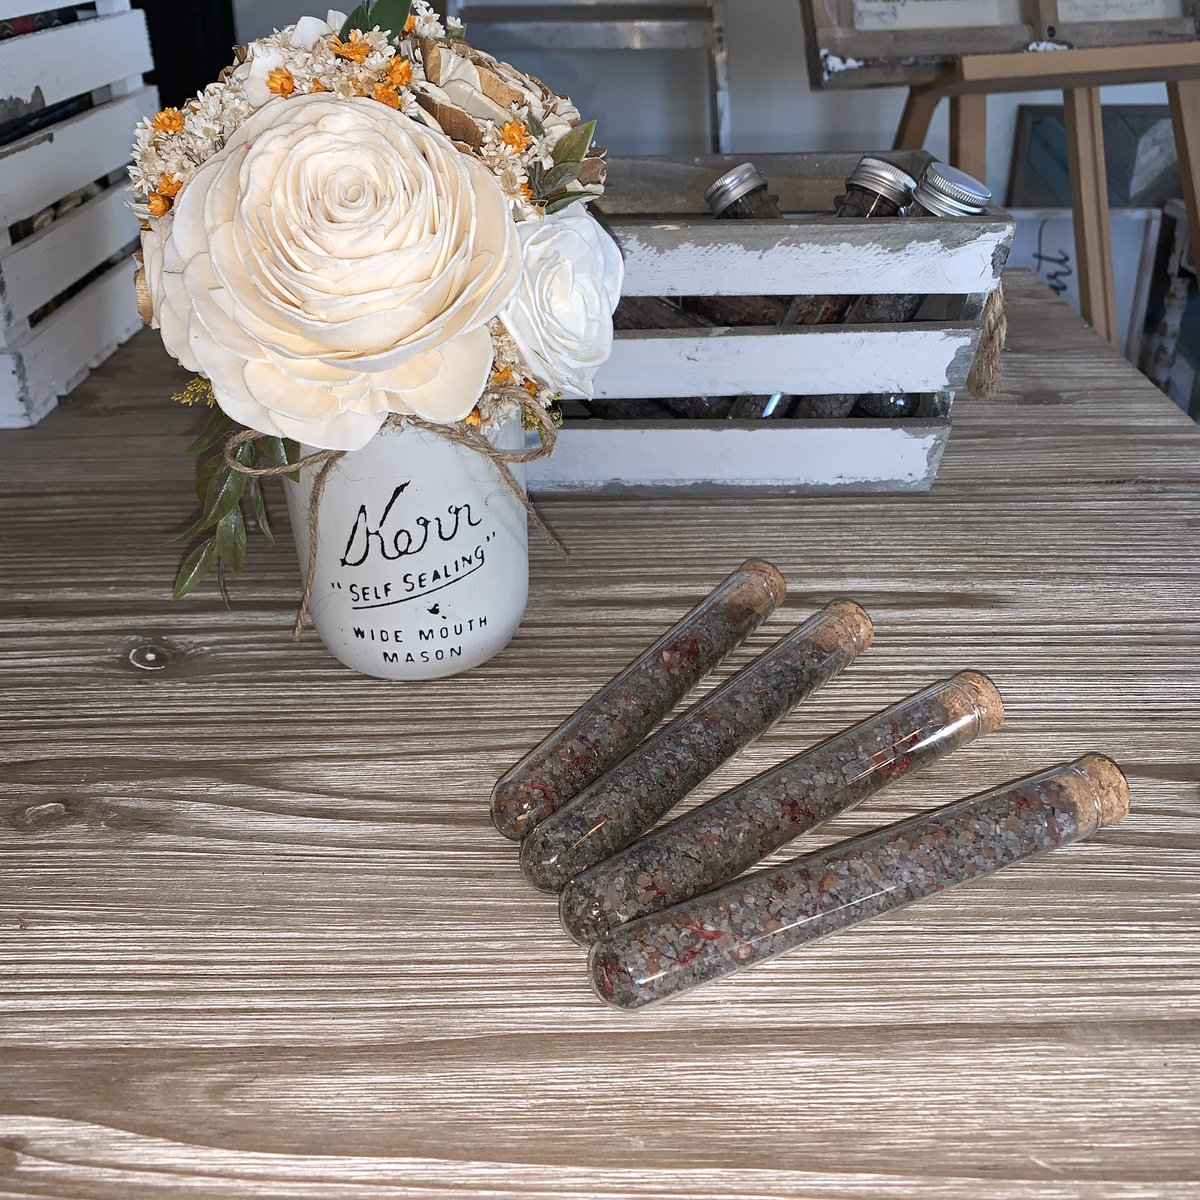 Let us create a beautiful #favor for your next #wedding or other special event! #kandcnaturals #allnatural #handmade #customized #gifts